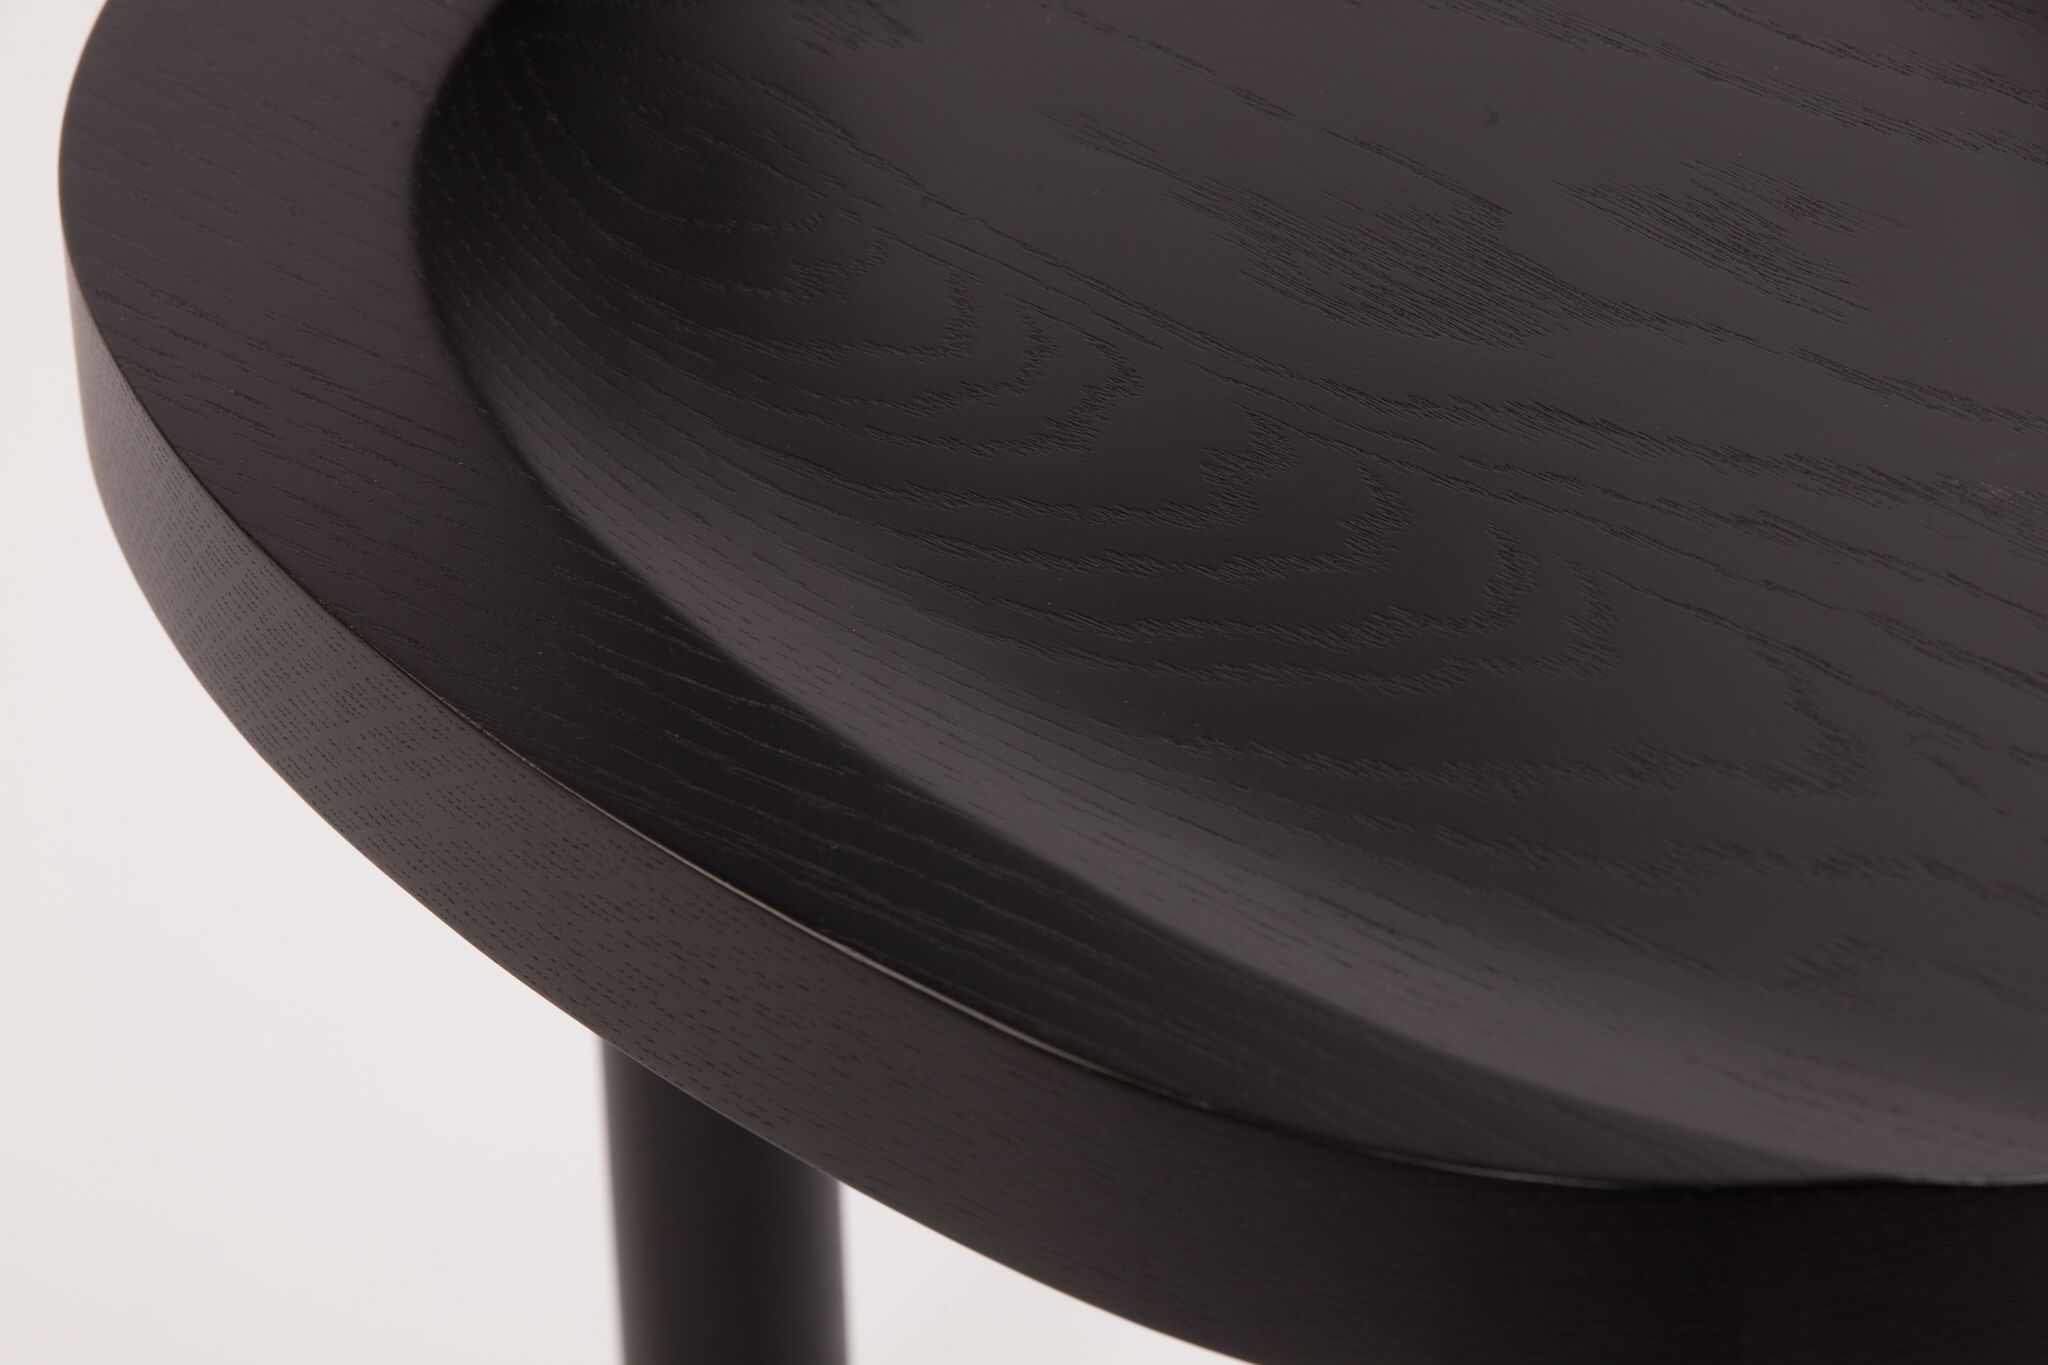 UNA_BLACK_DETAIL_SEAT02_preview.jpg